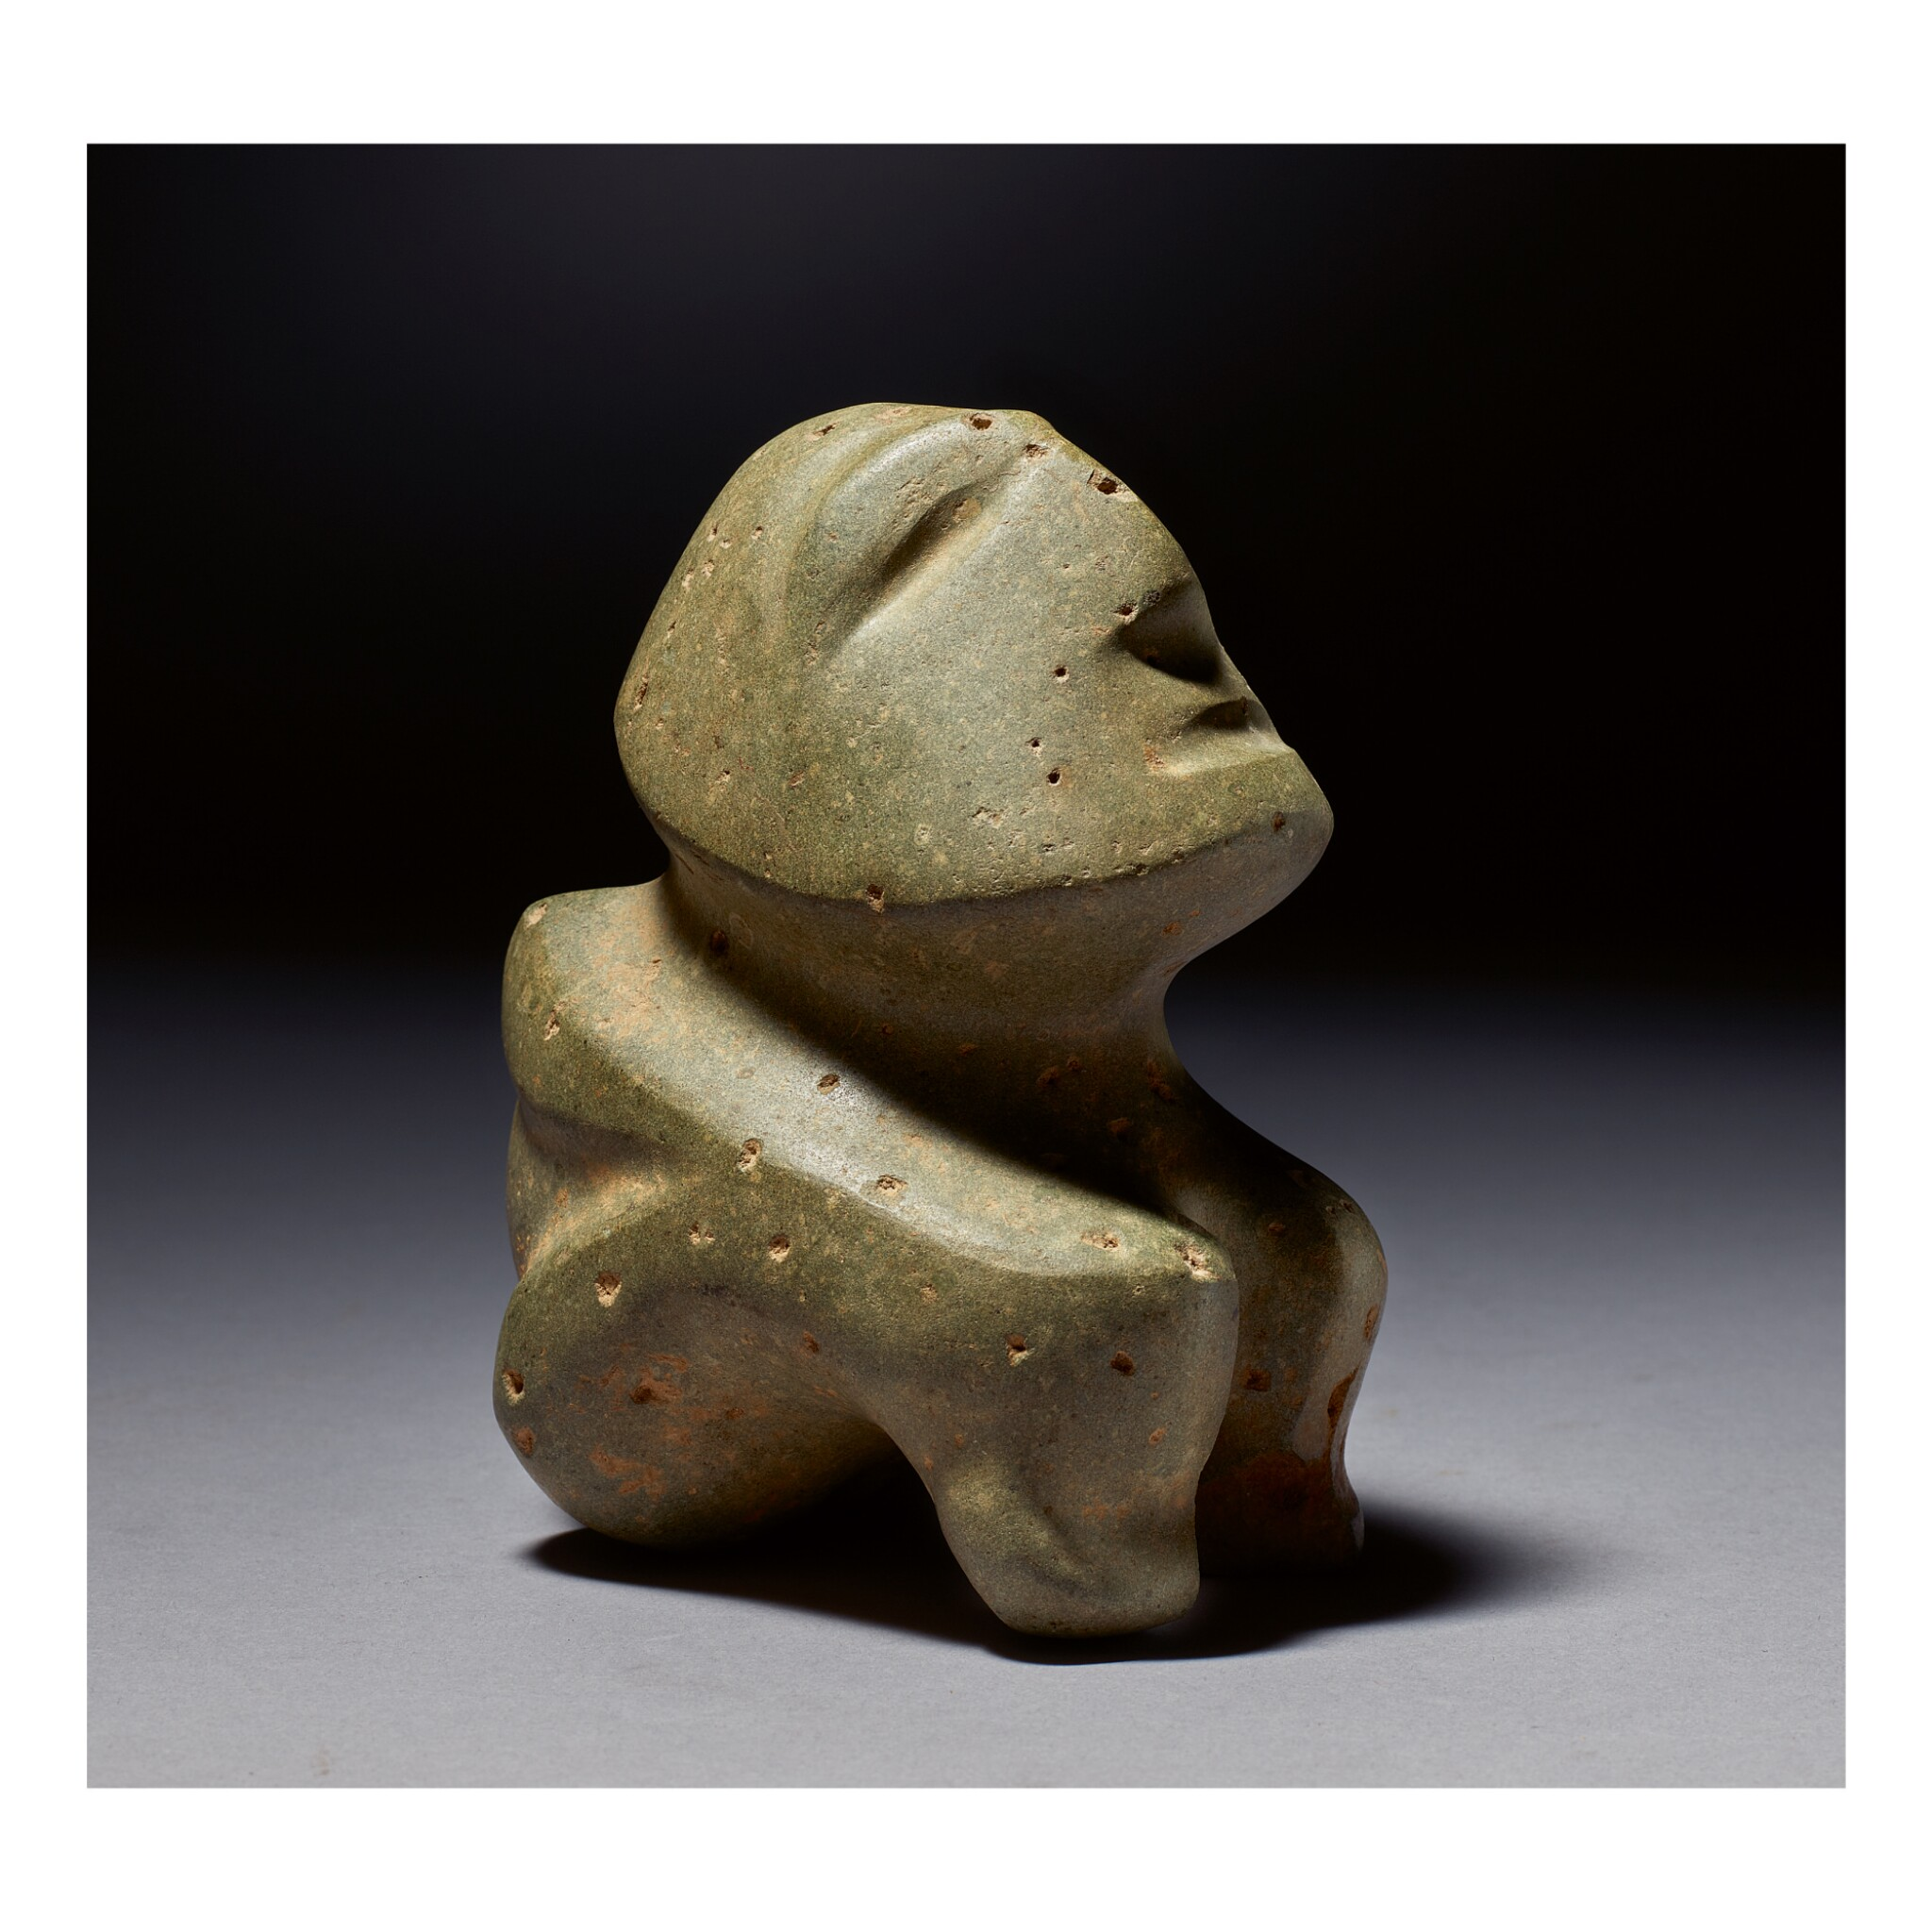 View full screen - View 1 of Lot 135. MEZCALA STONE SEATED FIGURE LATE PRECLASSIC, CIRCA 300 - 100 BC.